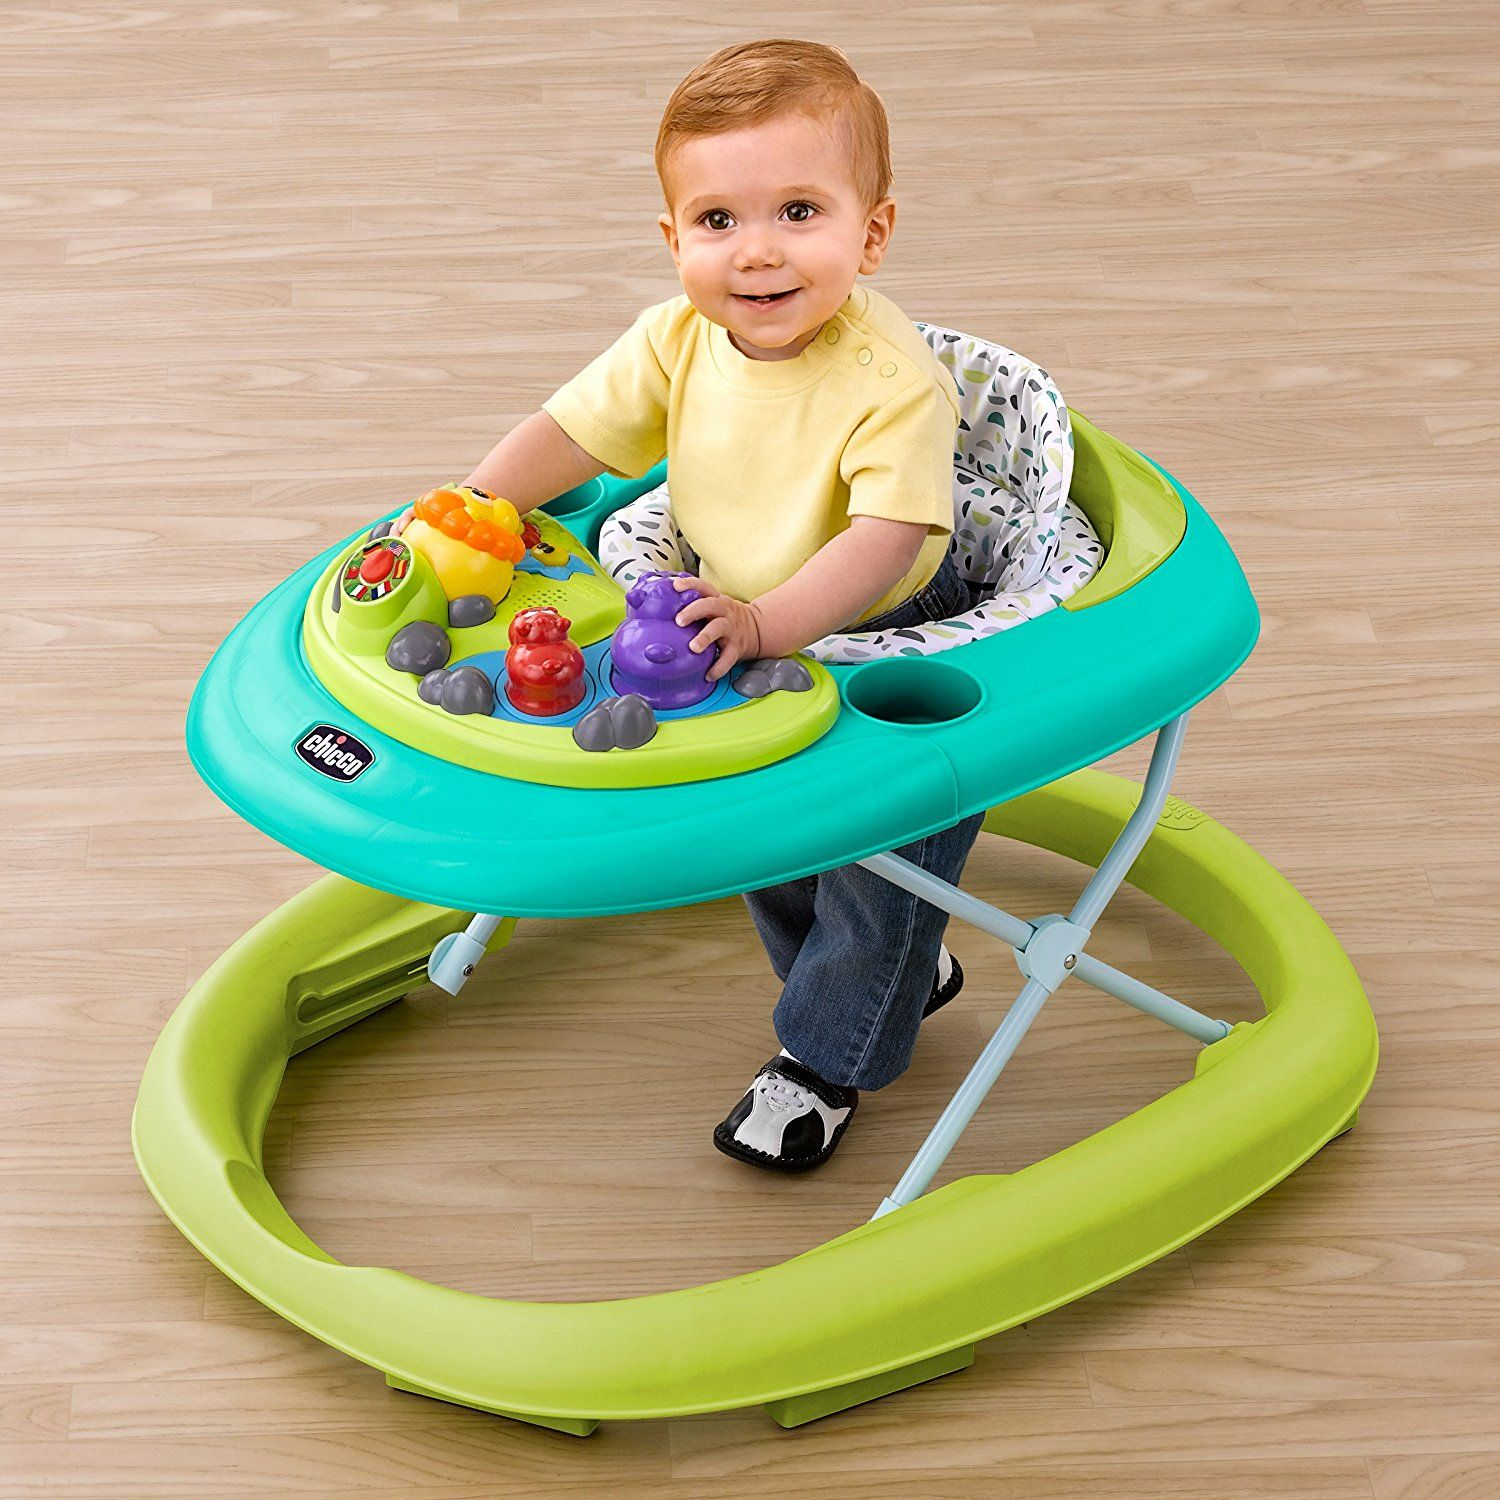 Are You Looking For Best Baby Walker For Carpet If Yes Then You Are In The Right Place We Spent 32 Hours On Baby Walk Baby Walker Cool Baby Stuff Chicco Baby